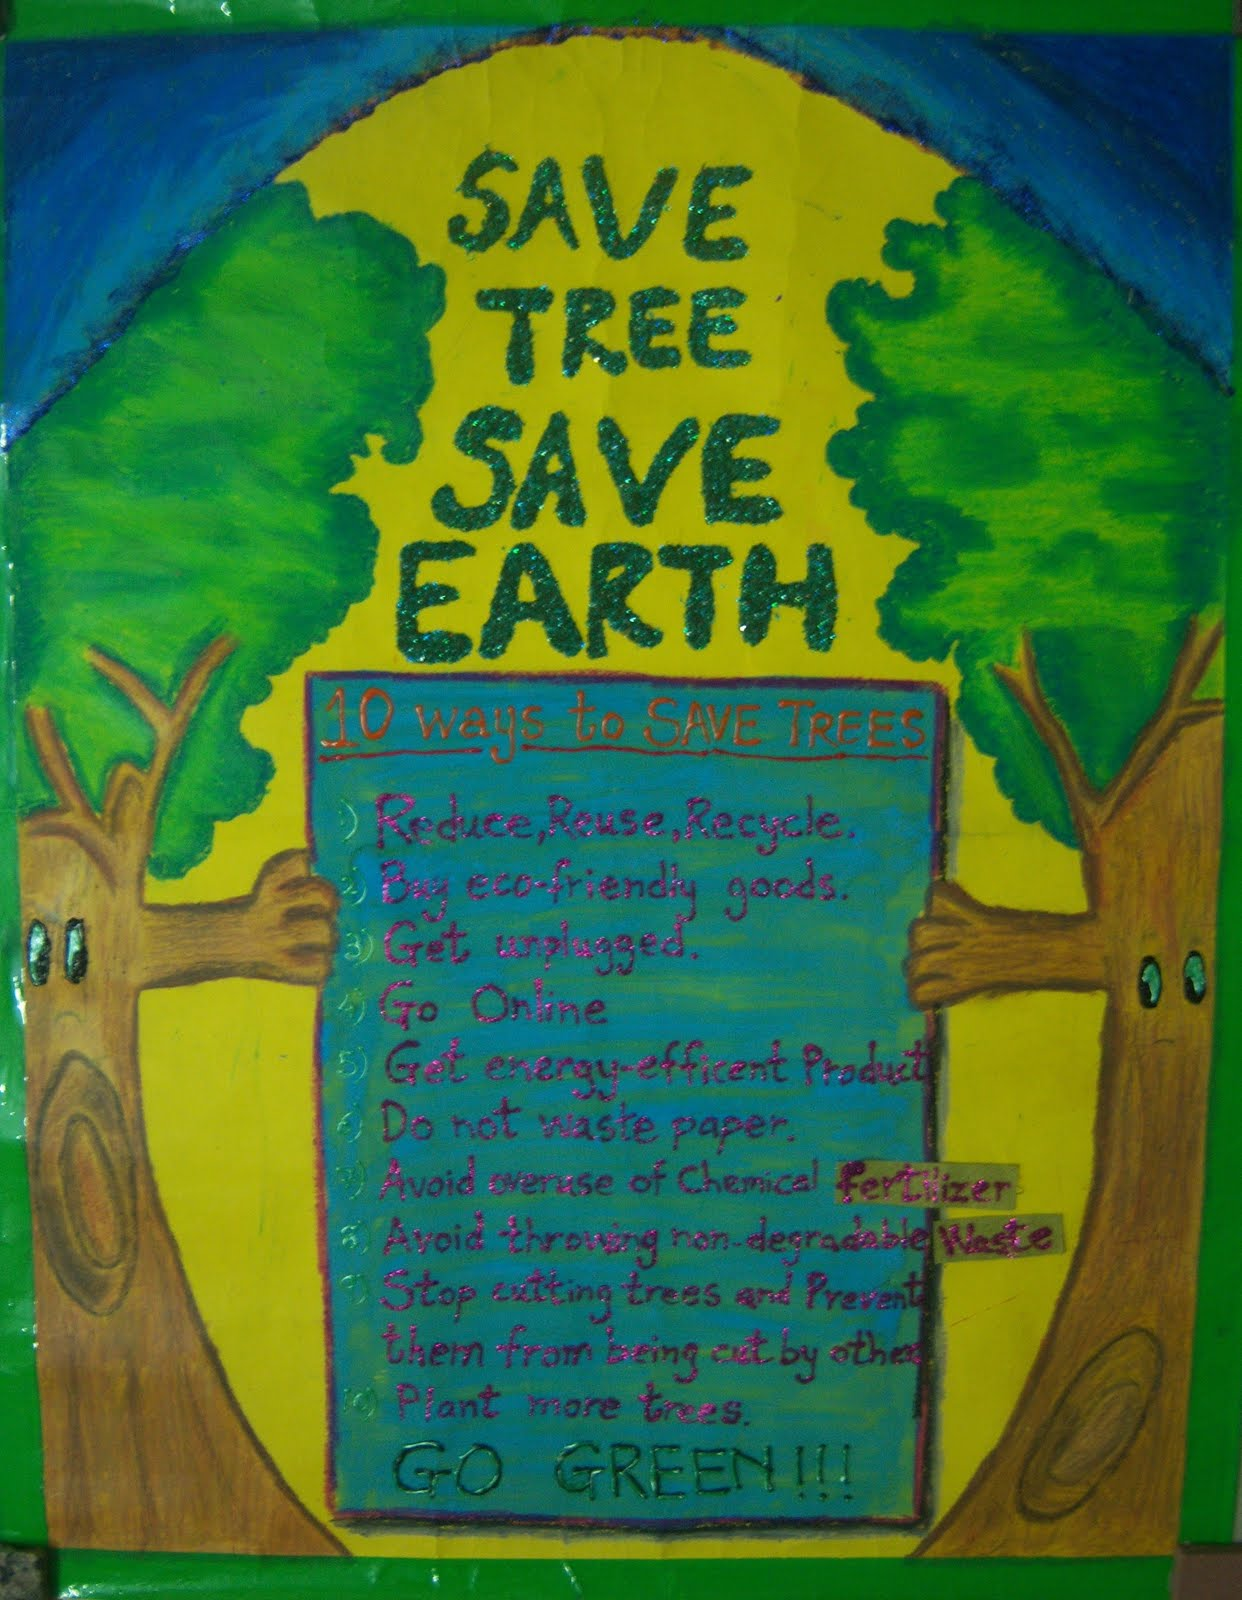 save tree save earth essay will write your essaysfor money get a behindnbeyond pot com